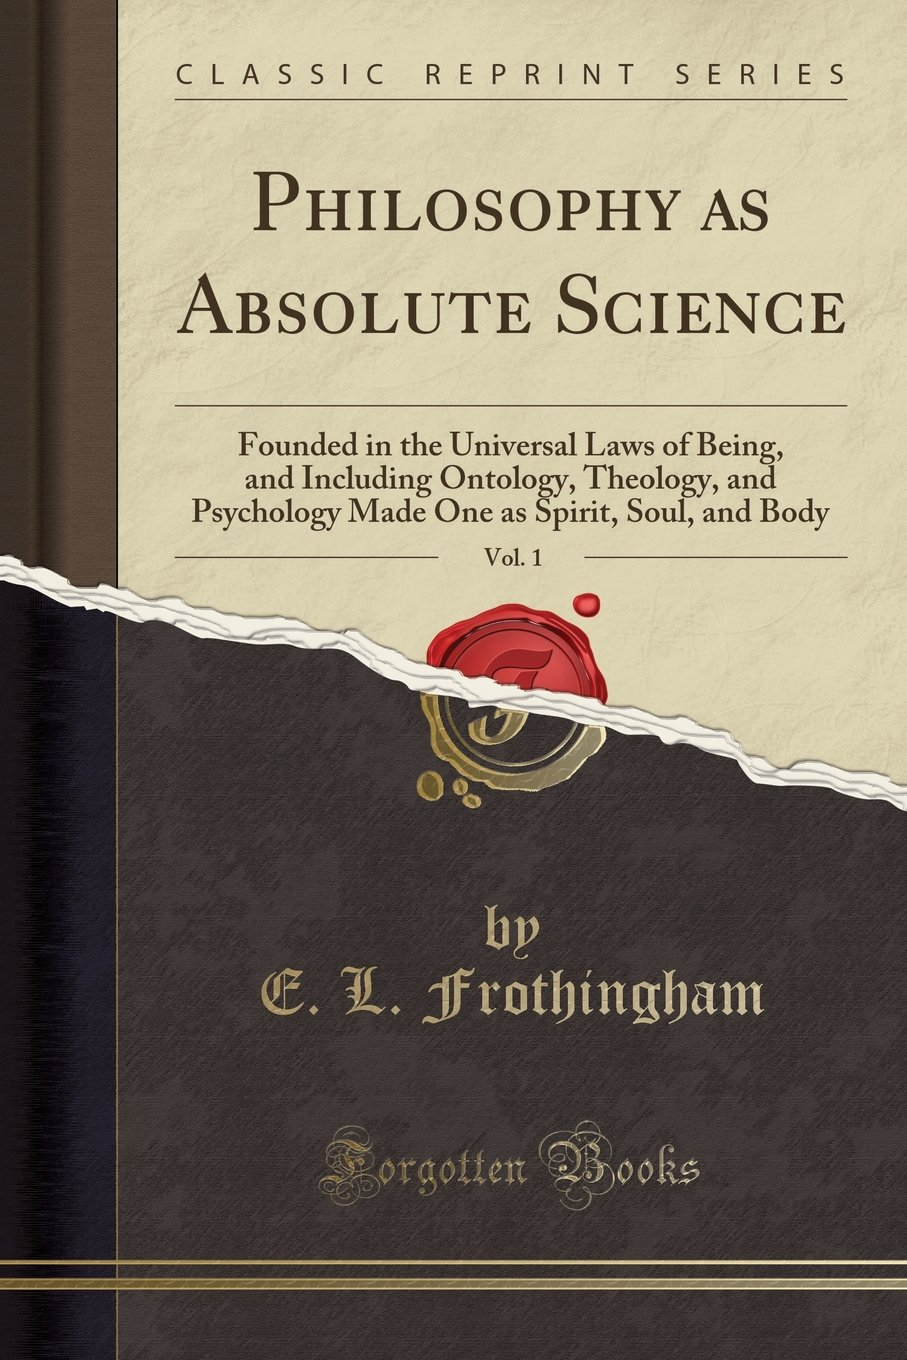 Download Philosophy as Absolute Science, Vol. 1: Founded in the Universal Laws of Being, and Including Ontology, Theology, and Psychology Made One as Spirit, Soul, and Body (Classic Reprint) PDF